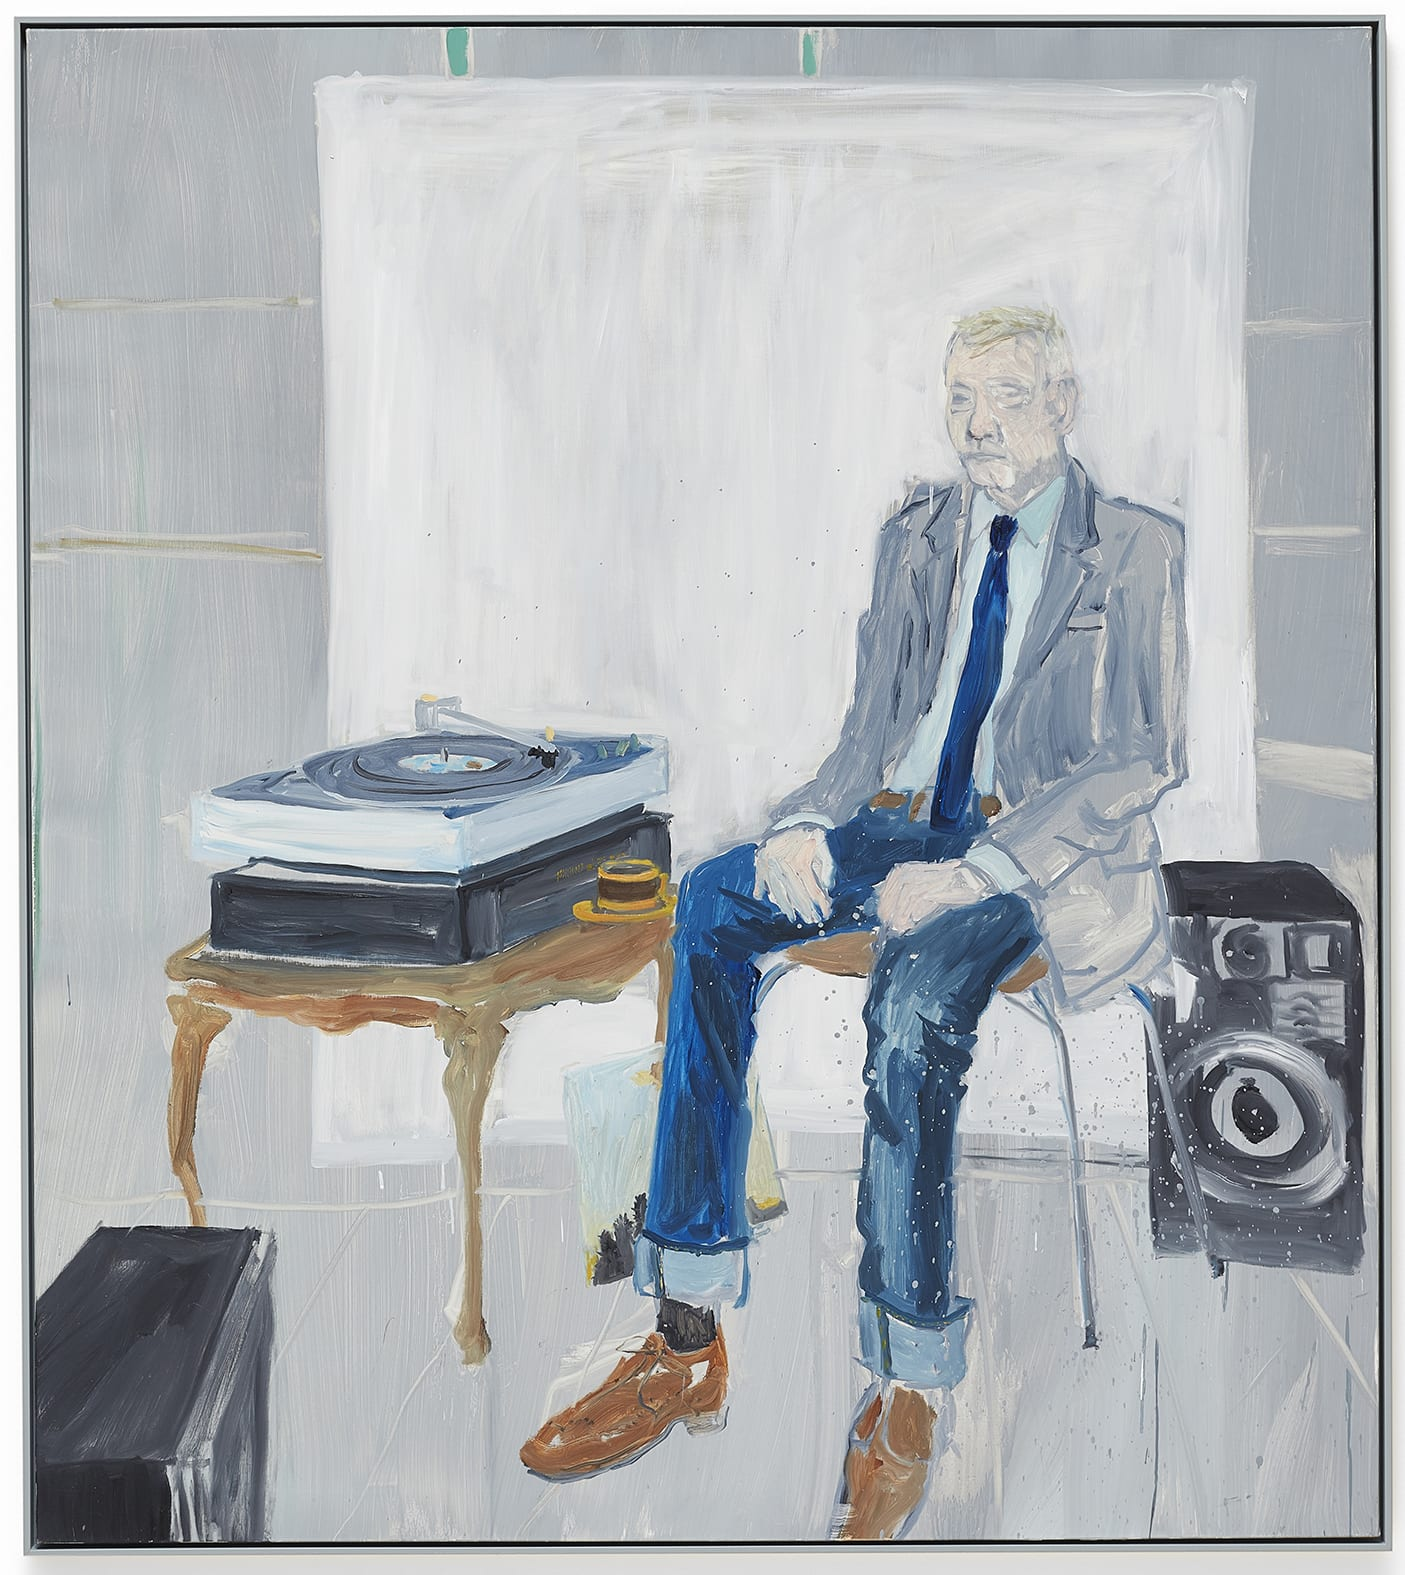 "<span class=""link fancybox-details-link""><a href=""/artists/35-ragnar-kjartansson/works/11180/"">View Detail Page</a></span><div class=""artist""><strong>RAGNAR KJARTANSSON</strong></div> <div class=""title""><em>Bjarni Bummer listens to Take it Easy by Eagles</em>, 2014</div> <div class=""medium"">oil on canvas</div> <div class=""dimensions"">180 x 160 cm</div>"